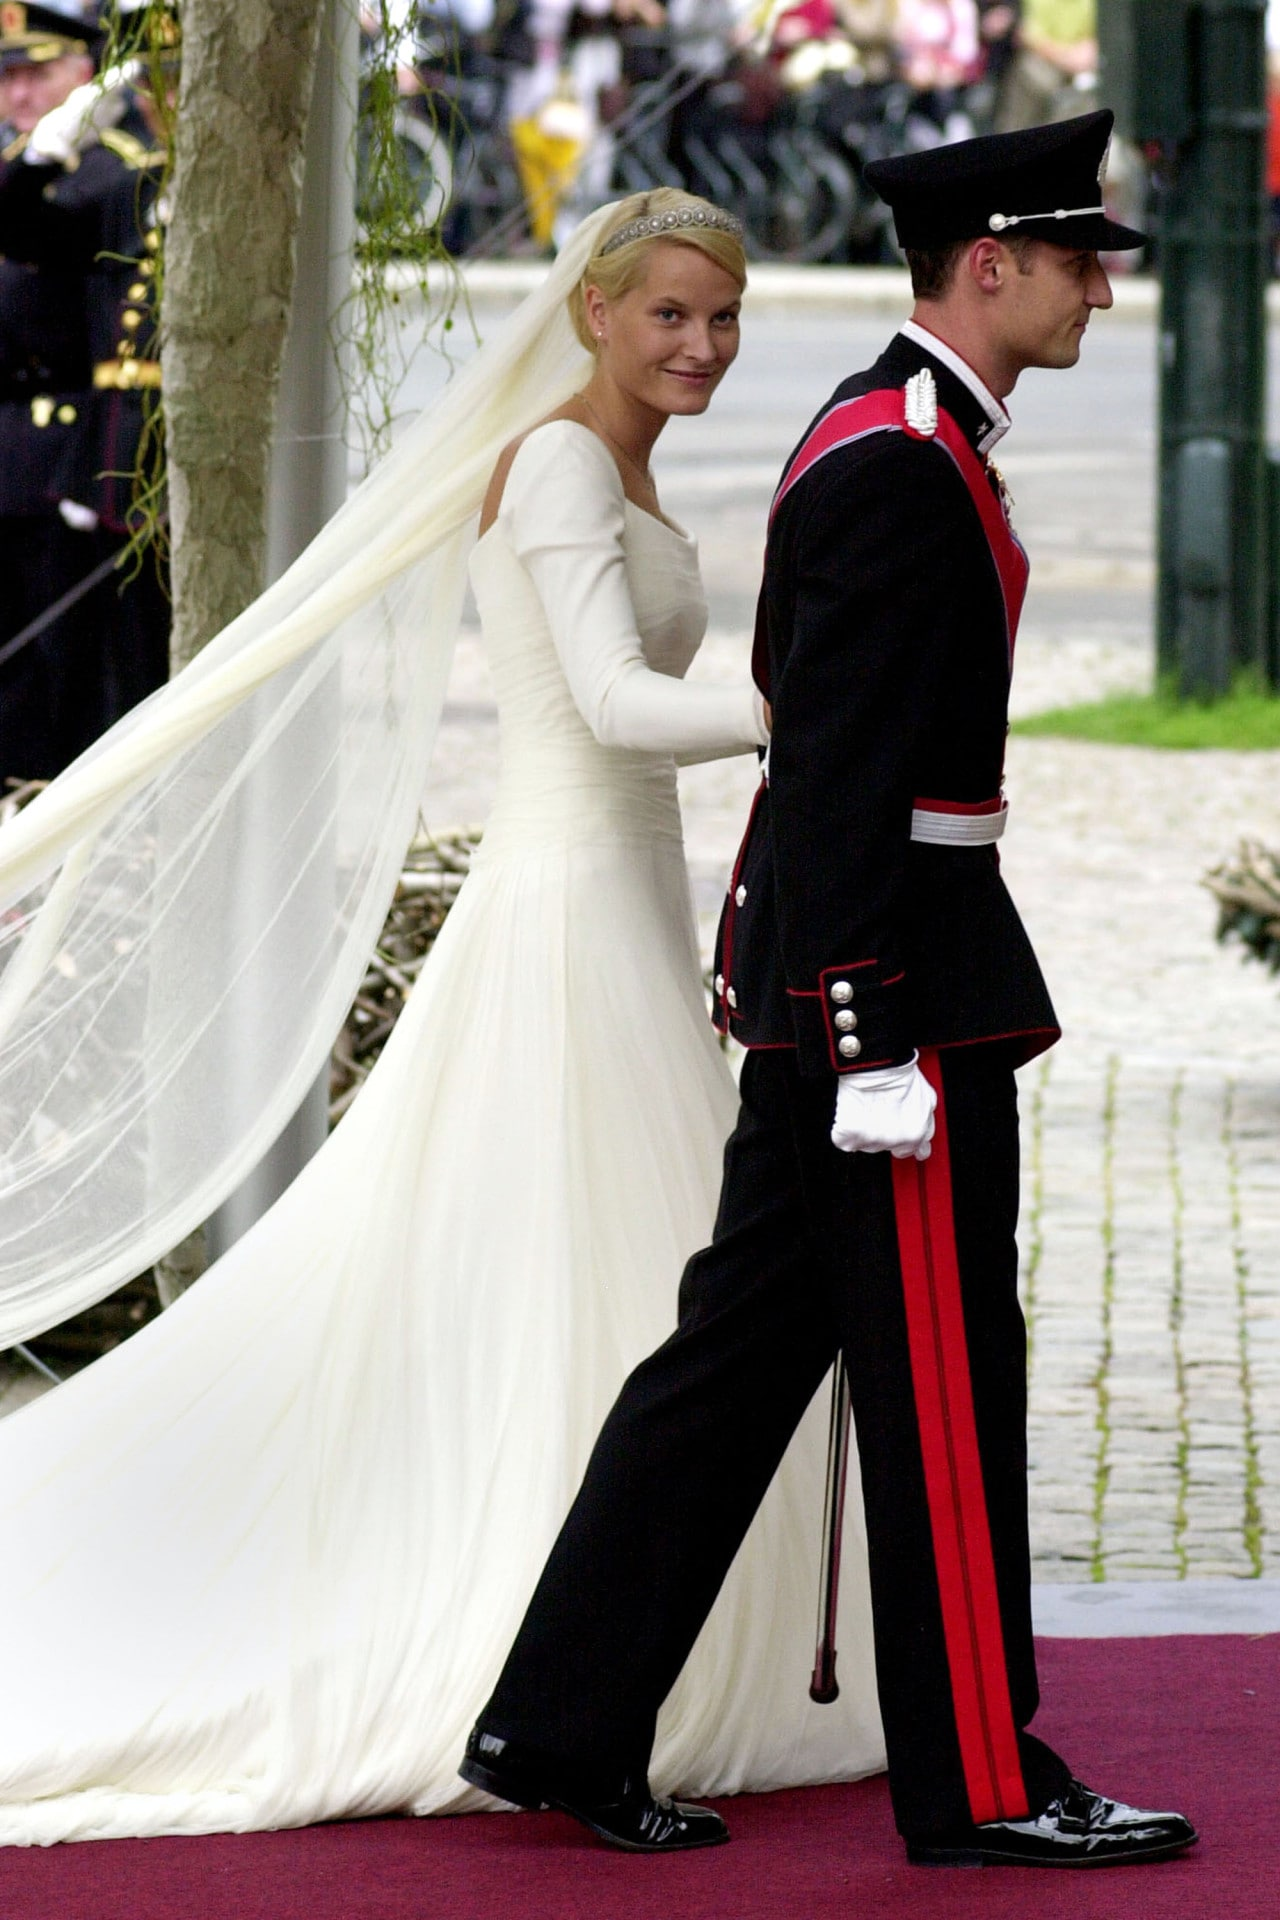 Inside Crown Prince Haakon of Norway and Mette-Marit Tjessem Høiby's 2001 wedding